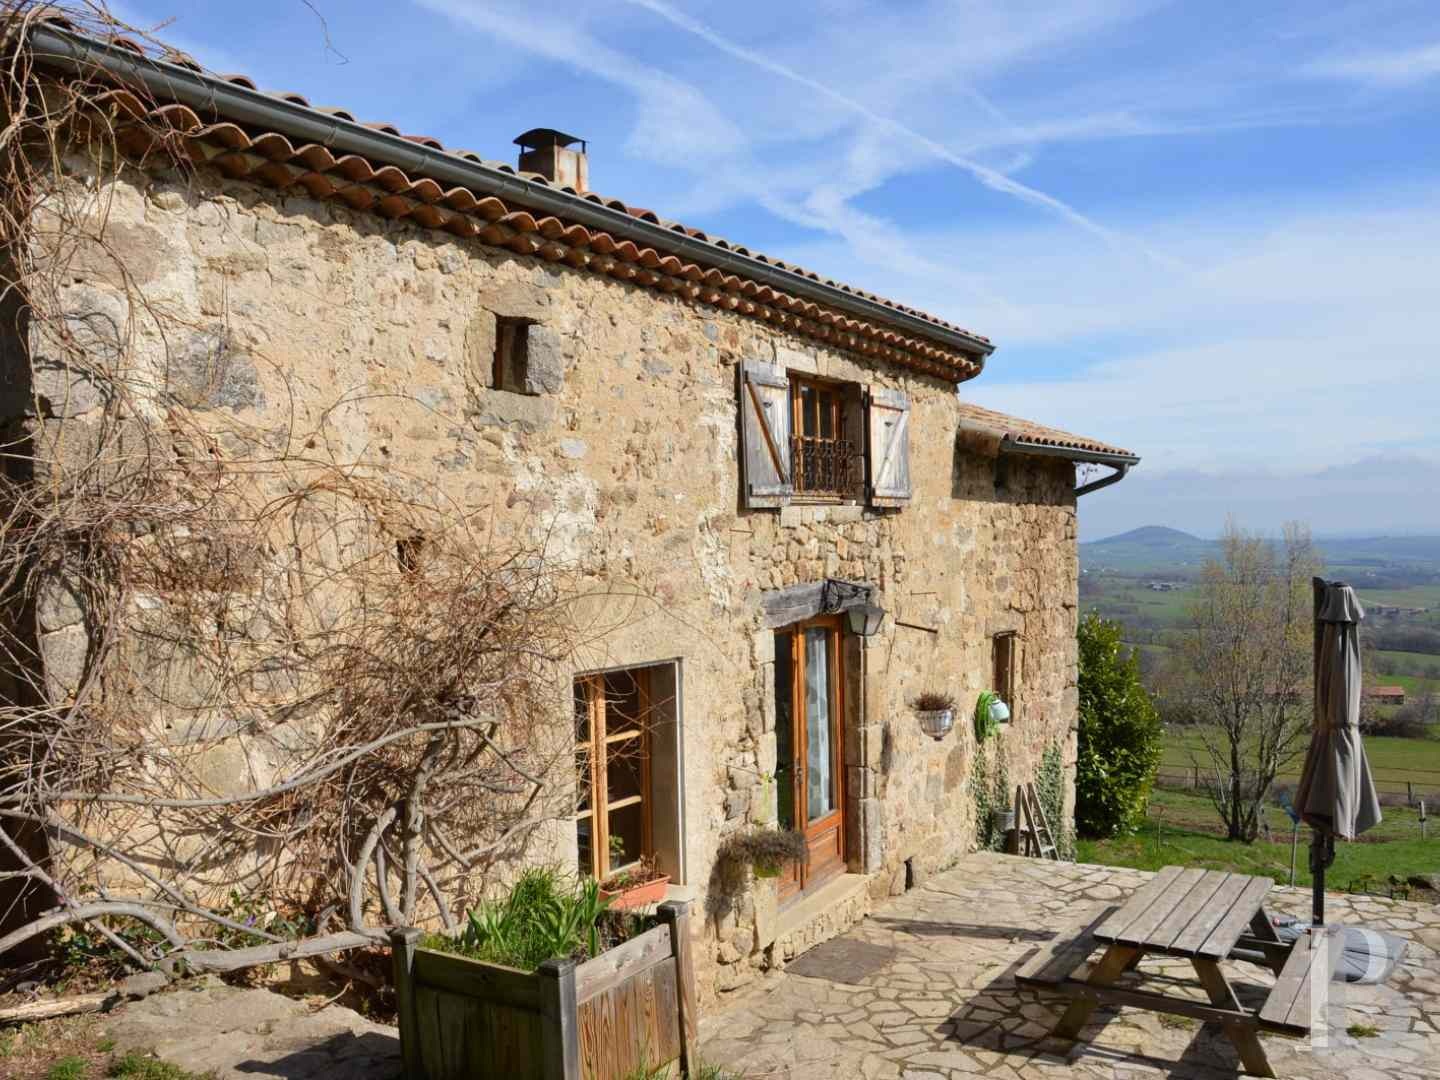 character properties France rhones alps character houses - 3 zoom